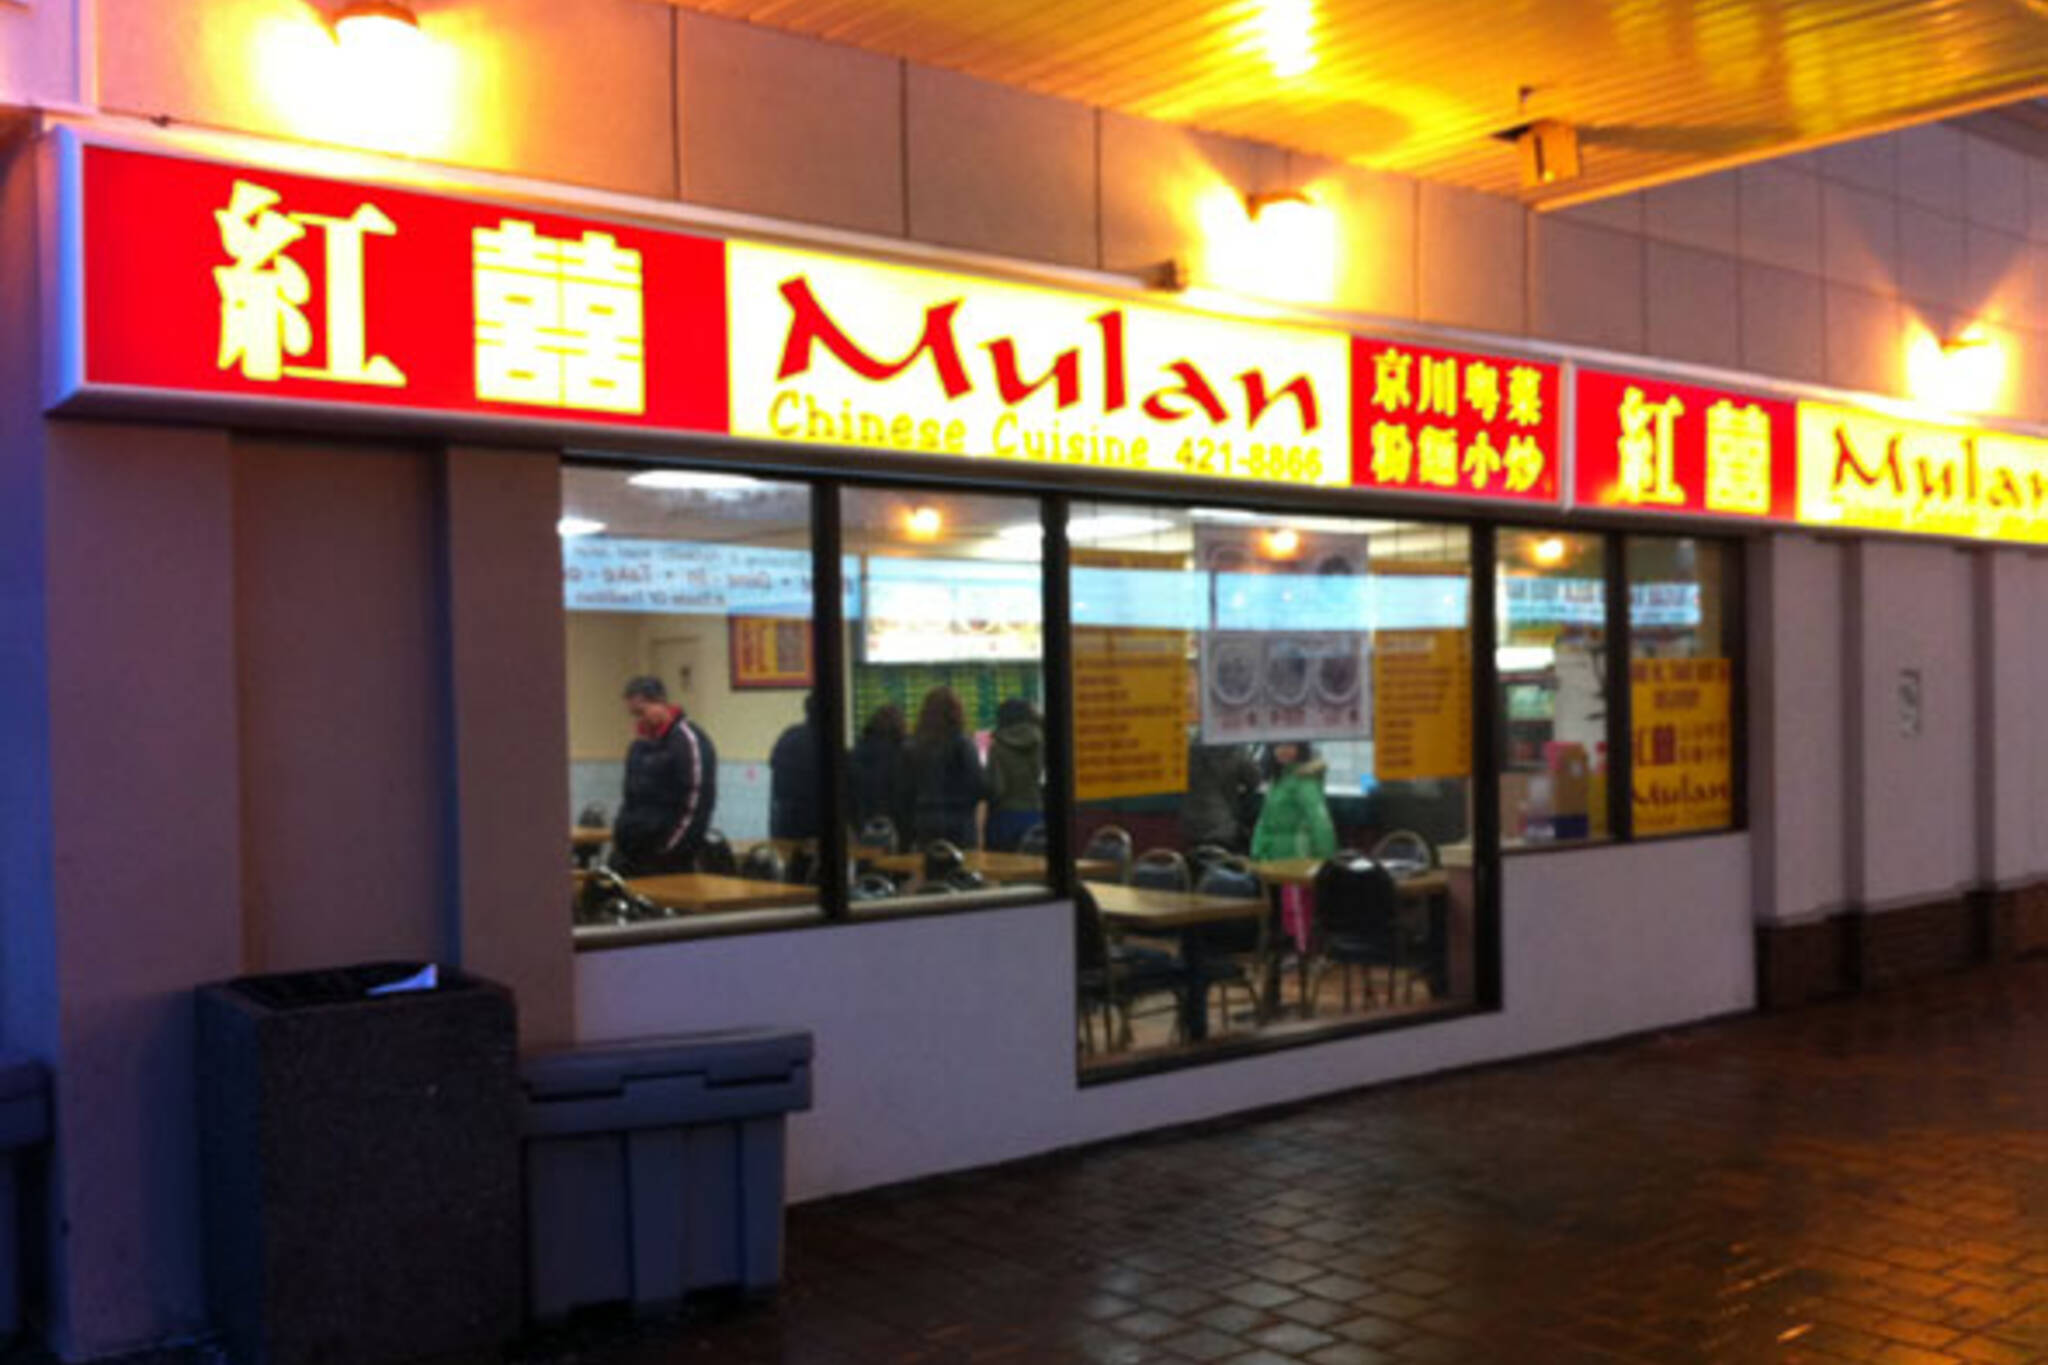 Mulan chinese cuisine blogto toronto for Asian cuisine toronto